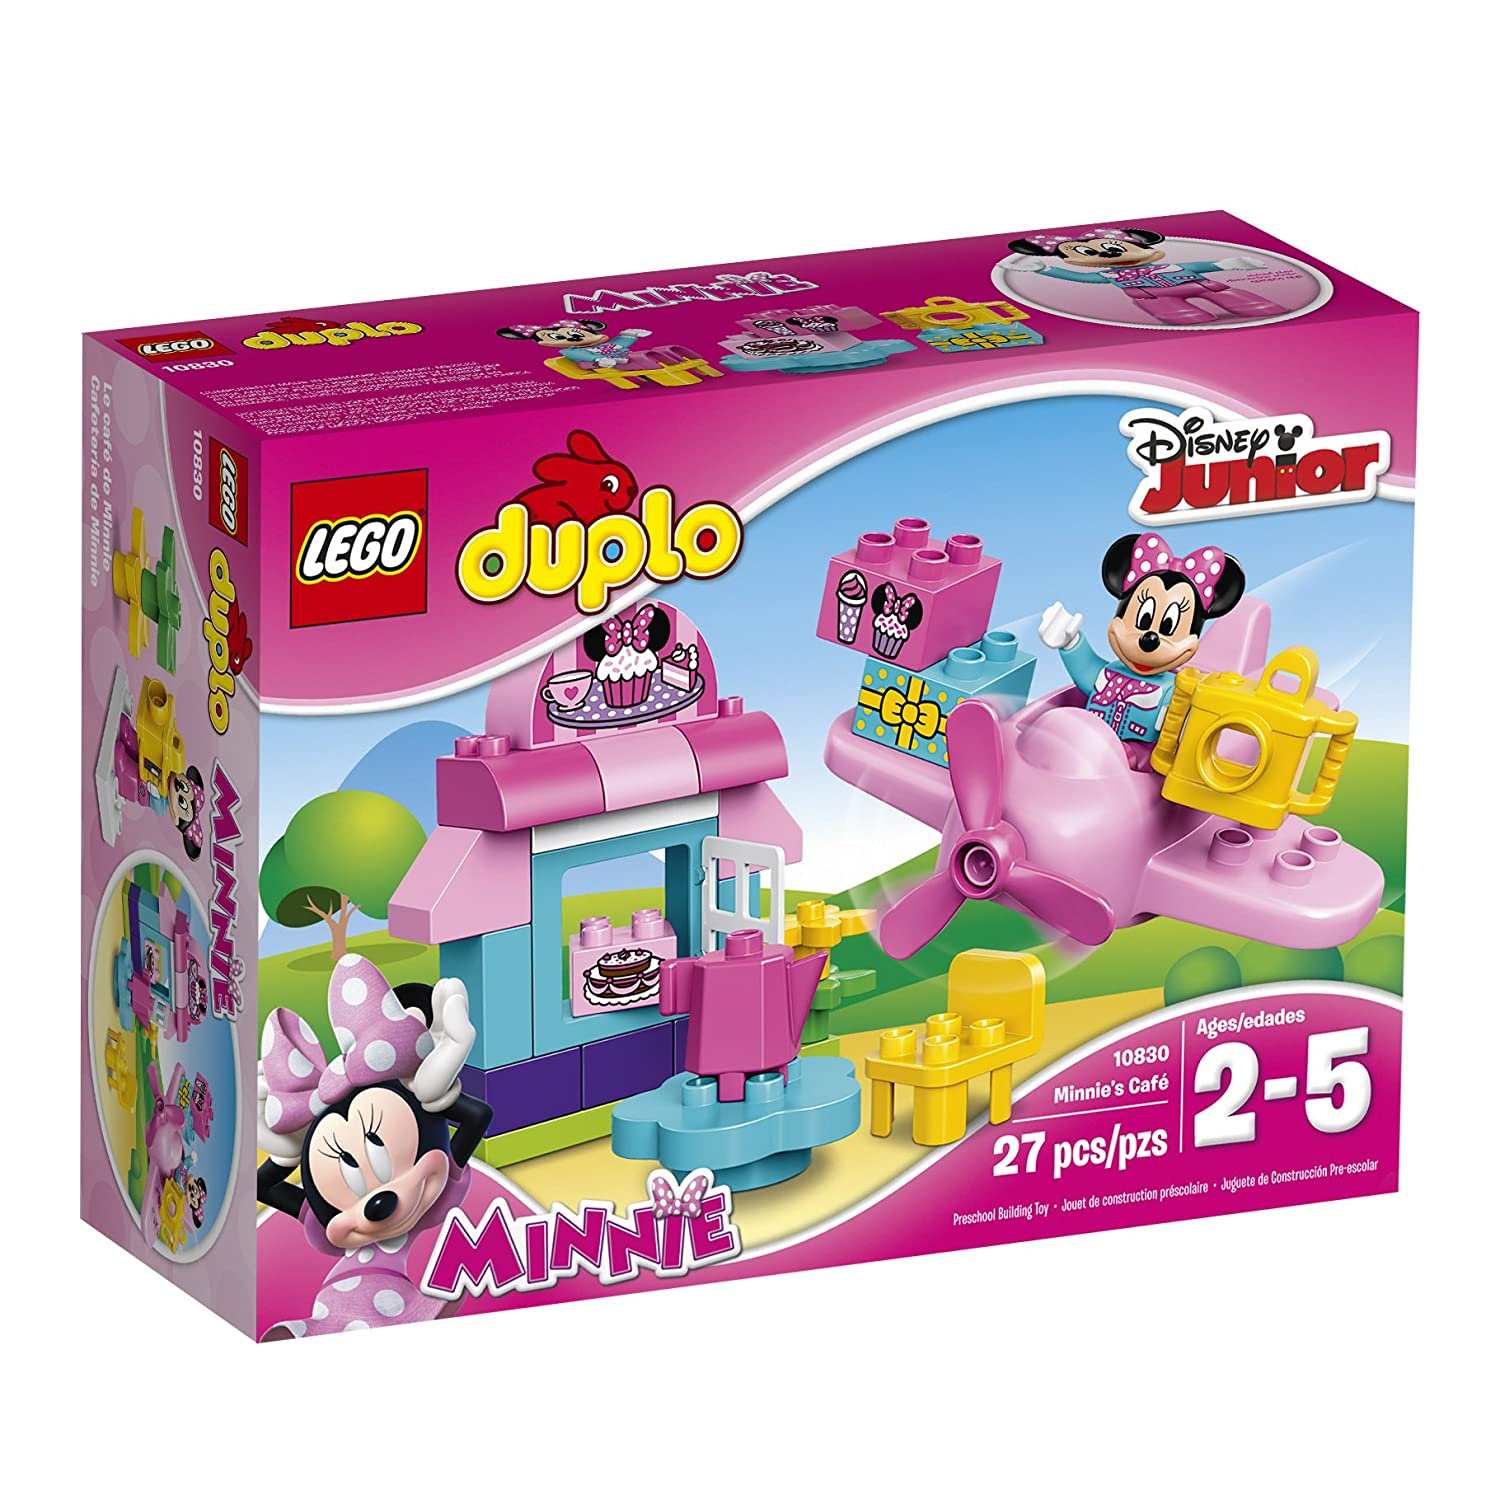 Lego Duplo L Disney Mickey Mouse Clubhouse Minnies Caf 10830 Large